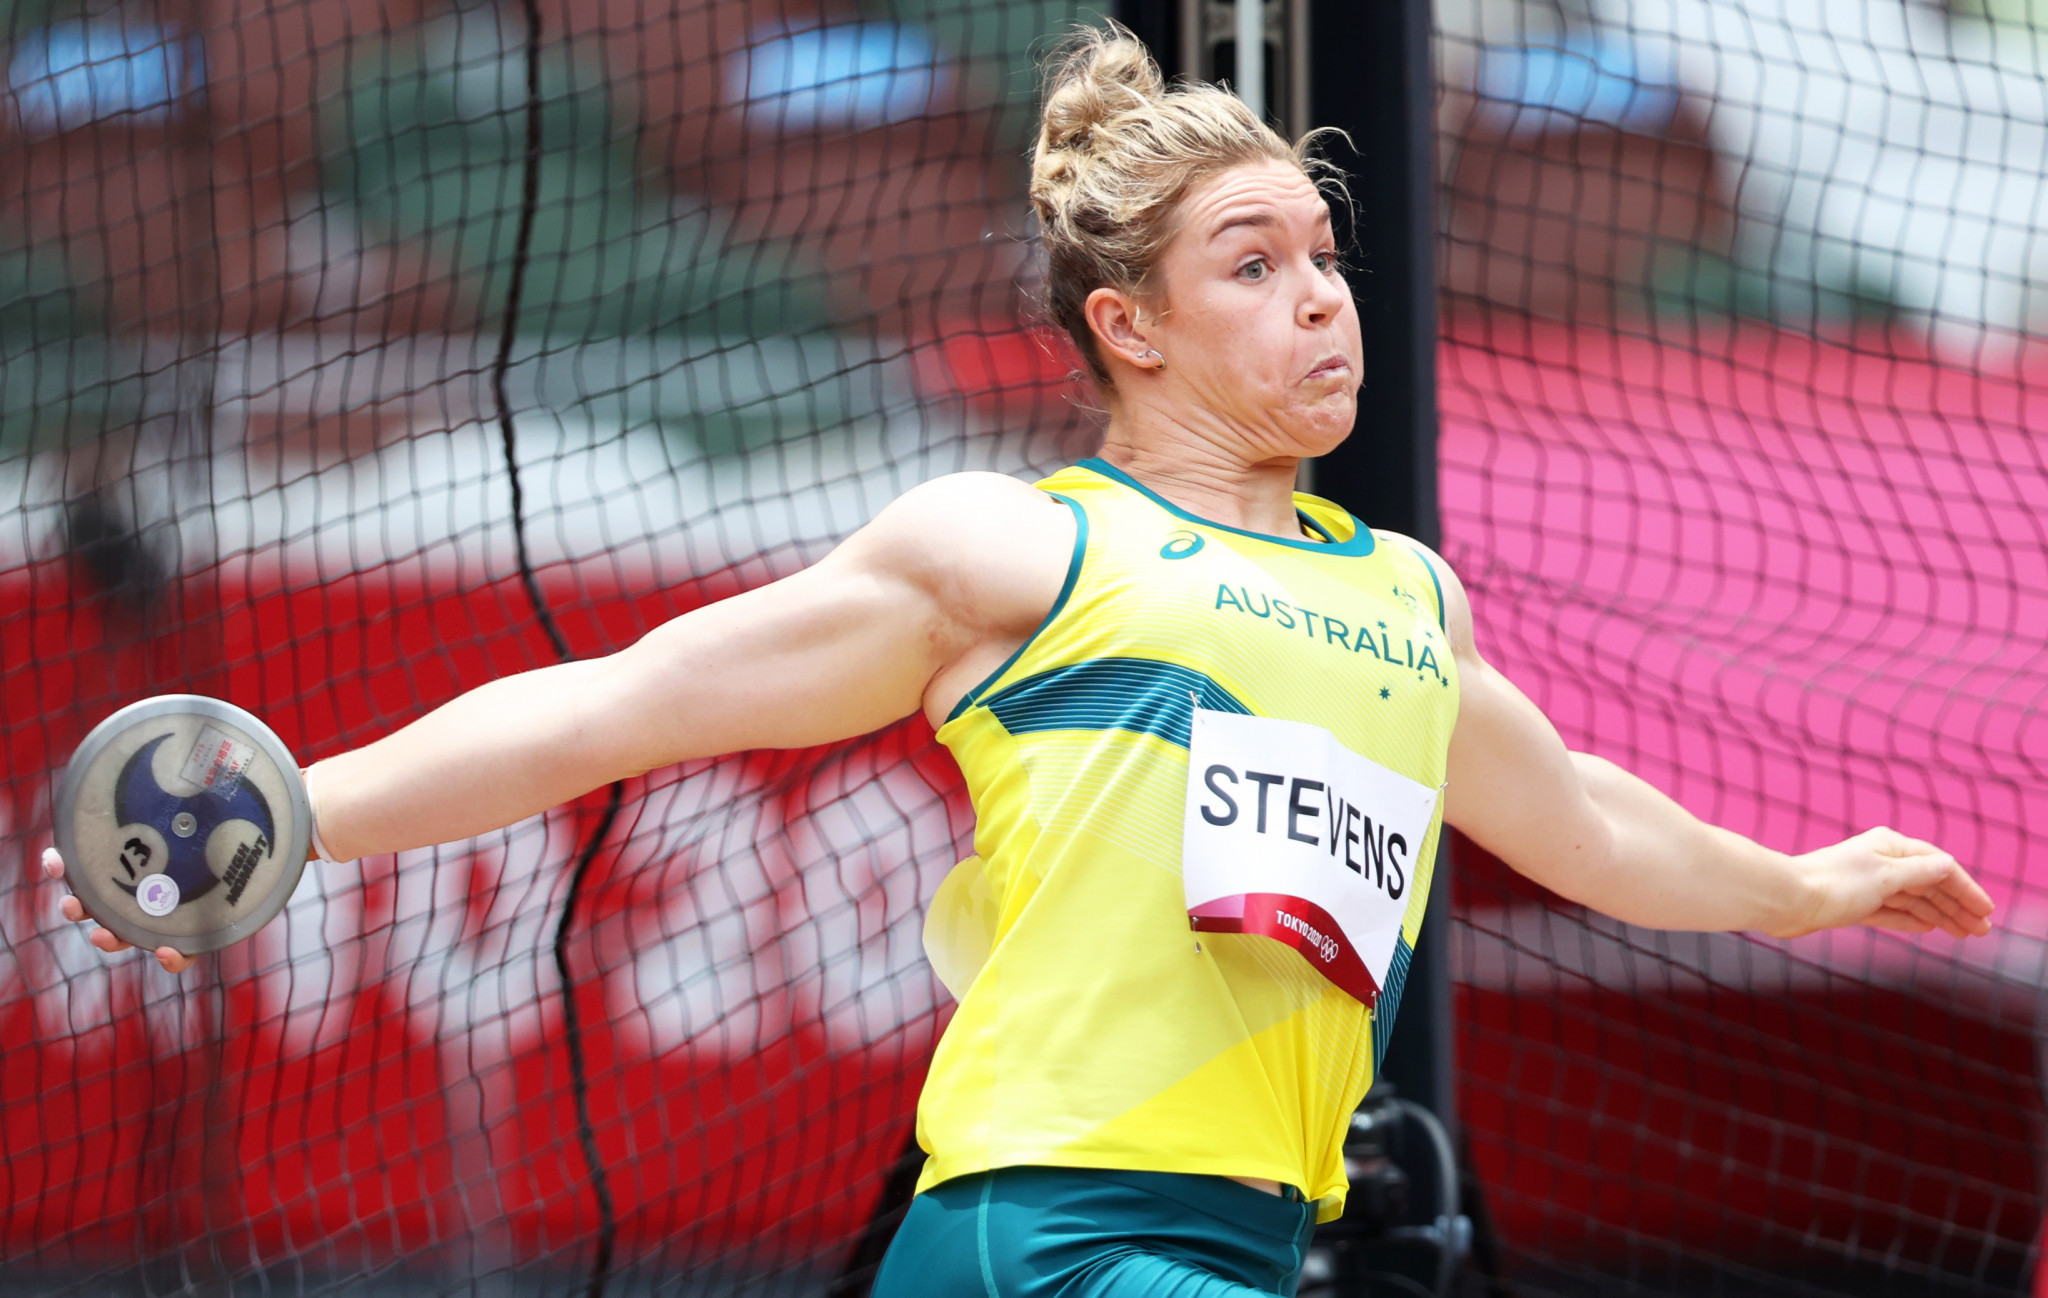 Back-to-back Commonwealth Games discus champion Stevens retires